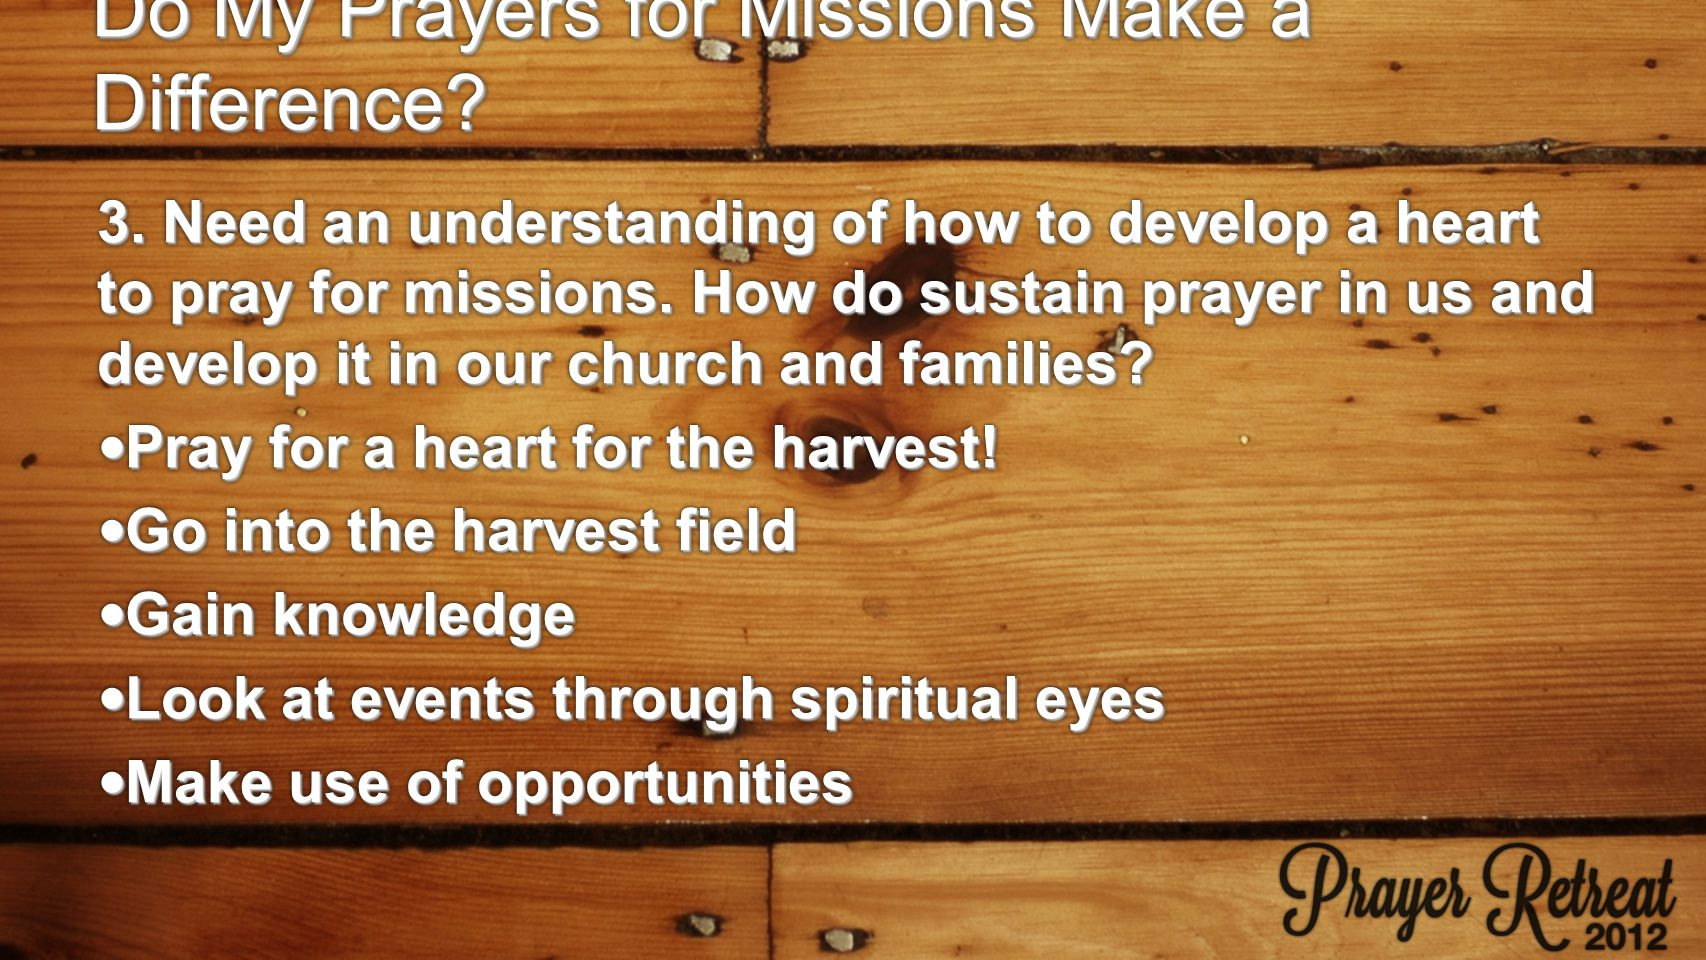 3. Need an understanding of how to develop a heart to pray for missions.